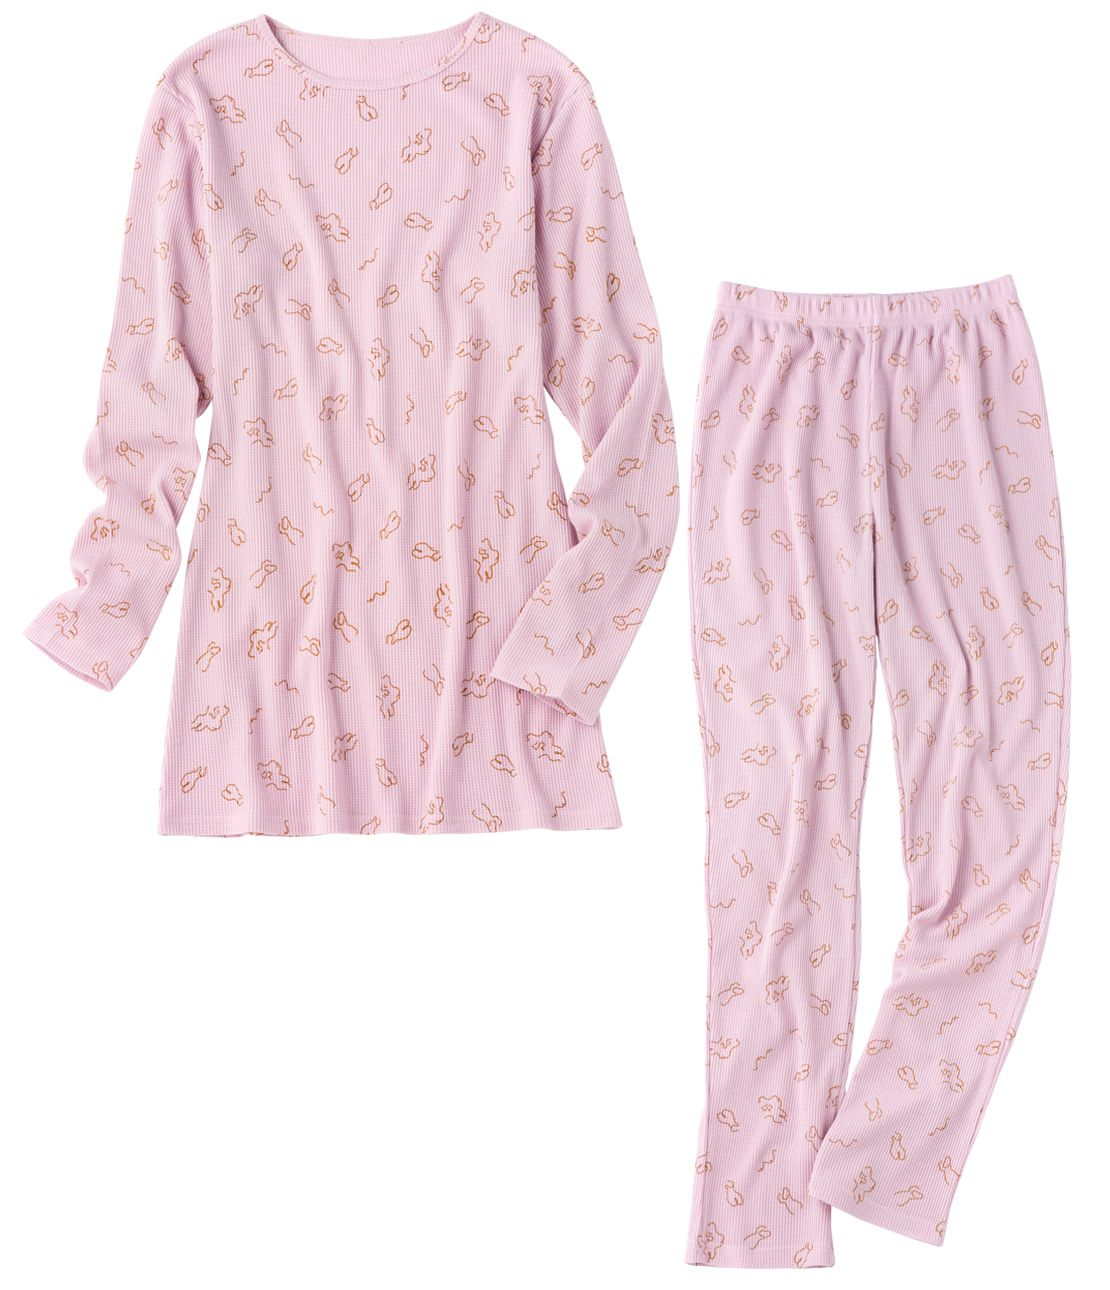 YM thermal print pajamas